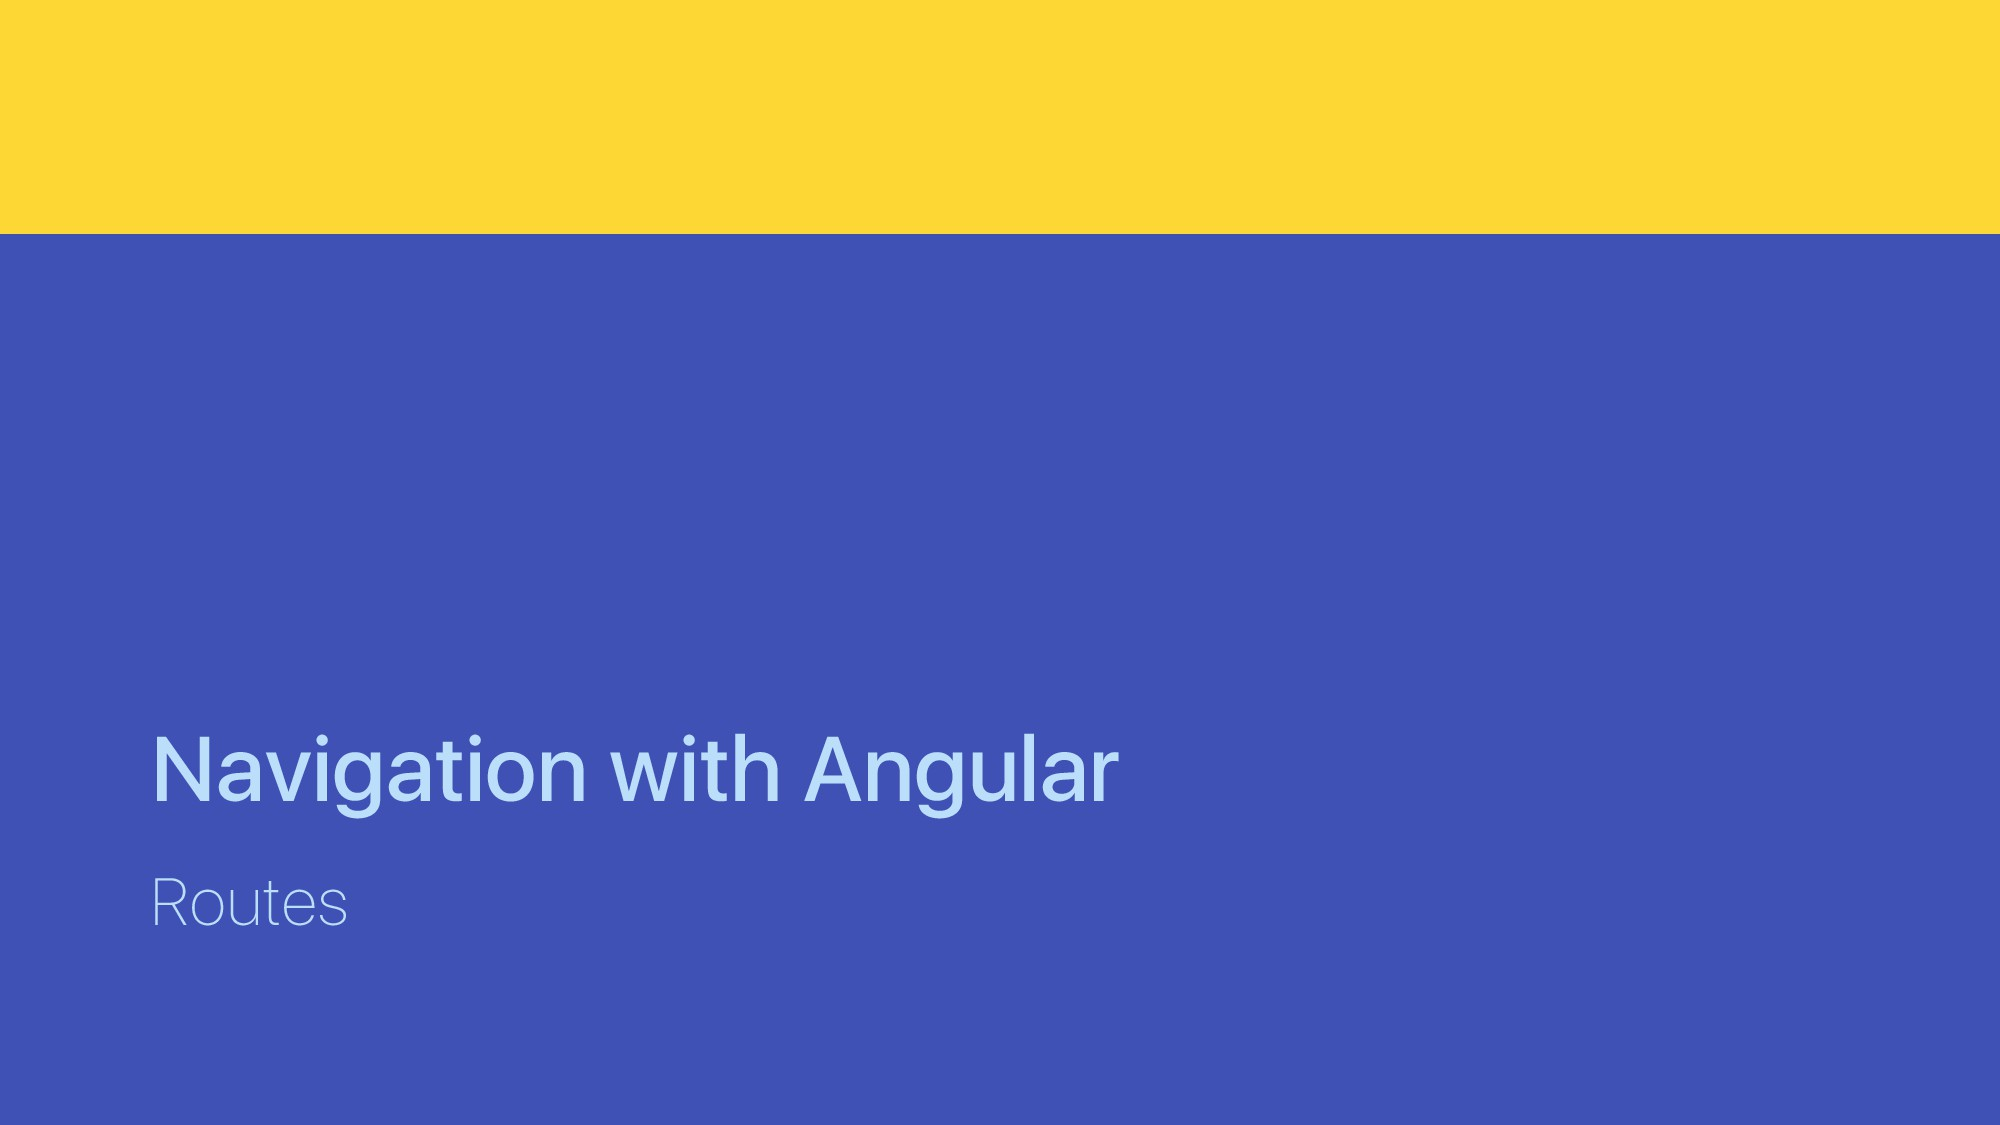 Navigation with Angular Routes